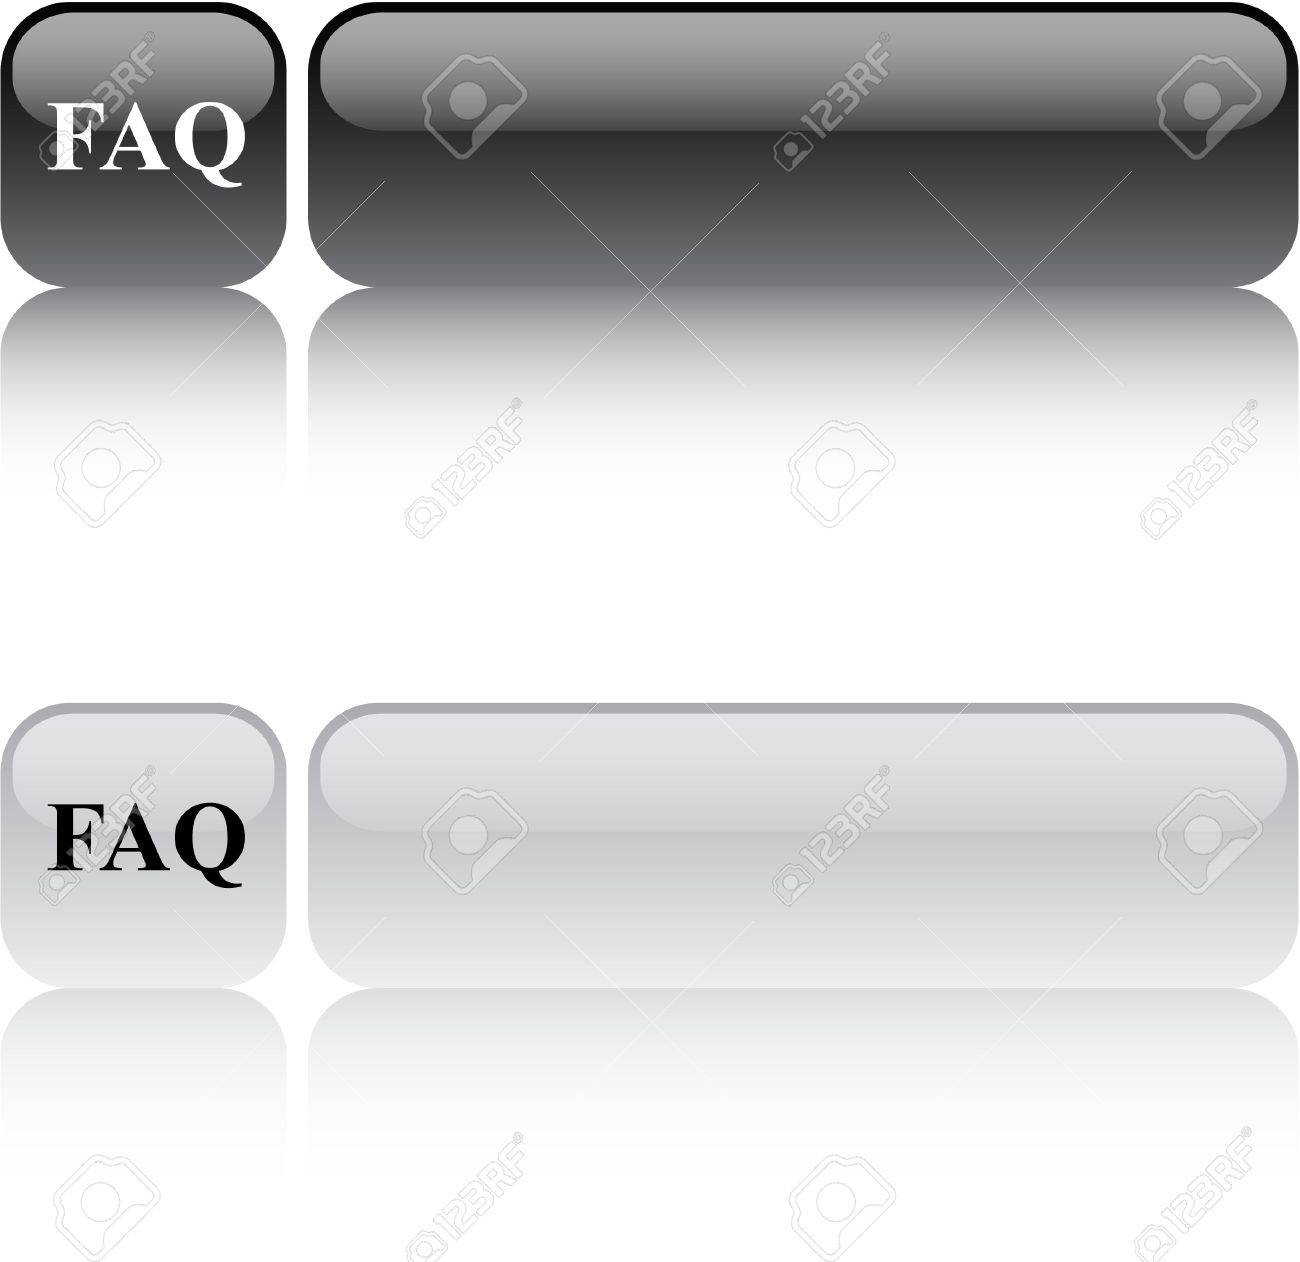 FAQ glossy square web buttons. Stock Vector - 7470099